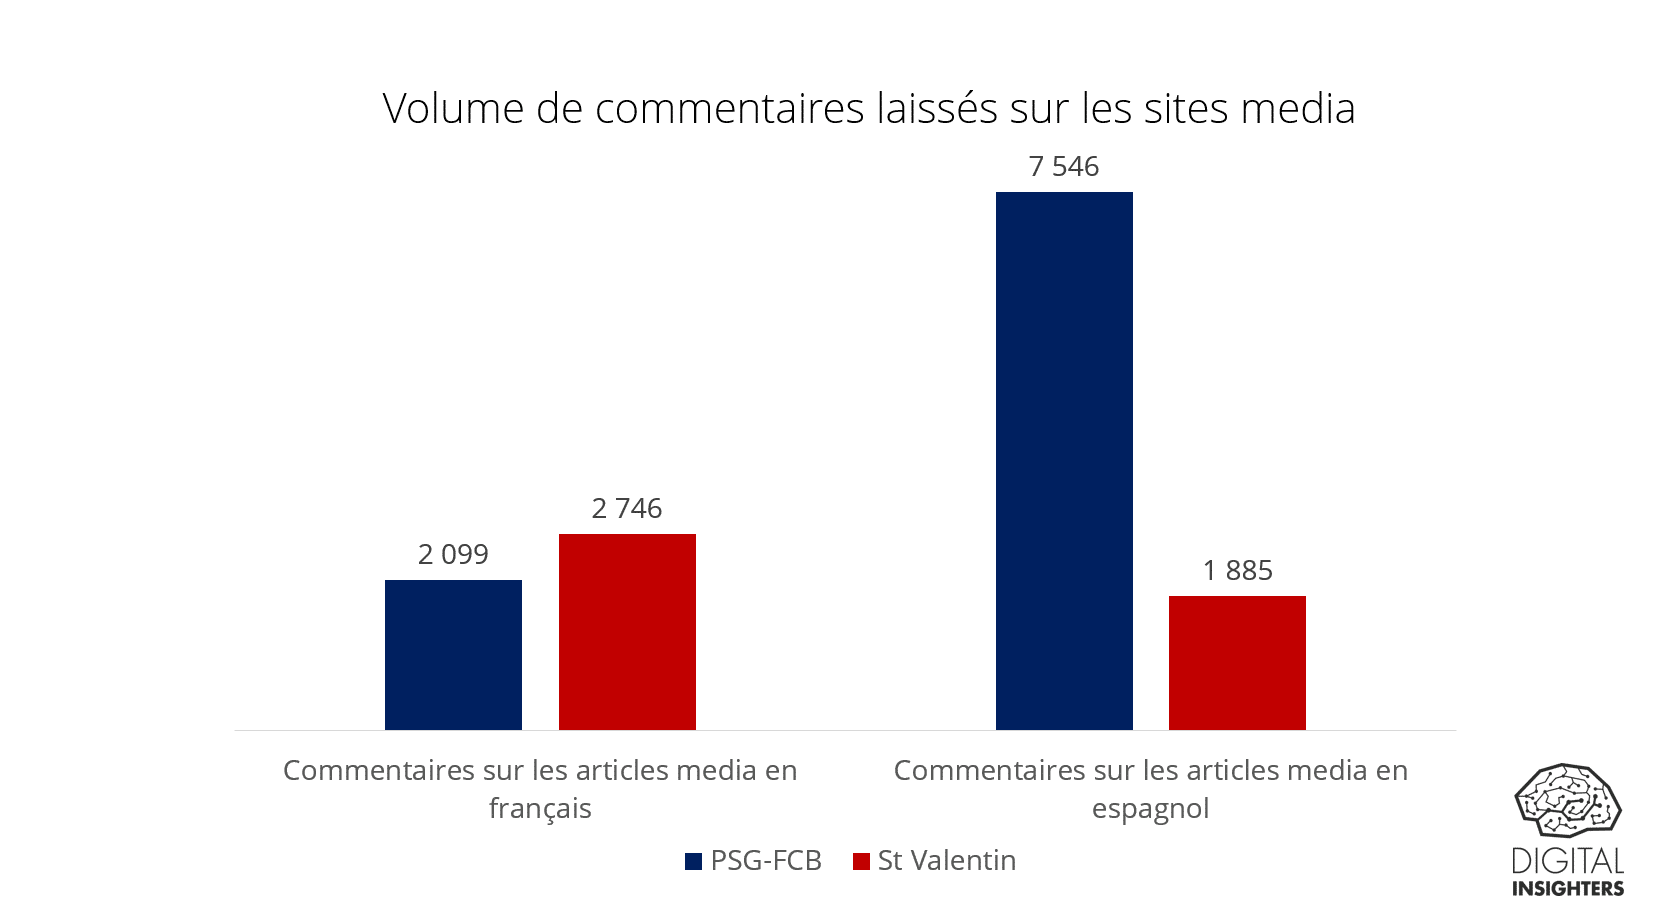 Volume de commentaires laissés sur les sites media